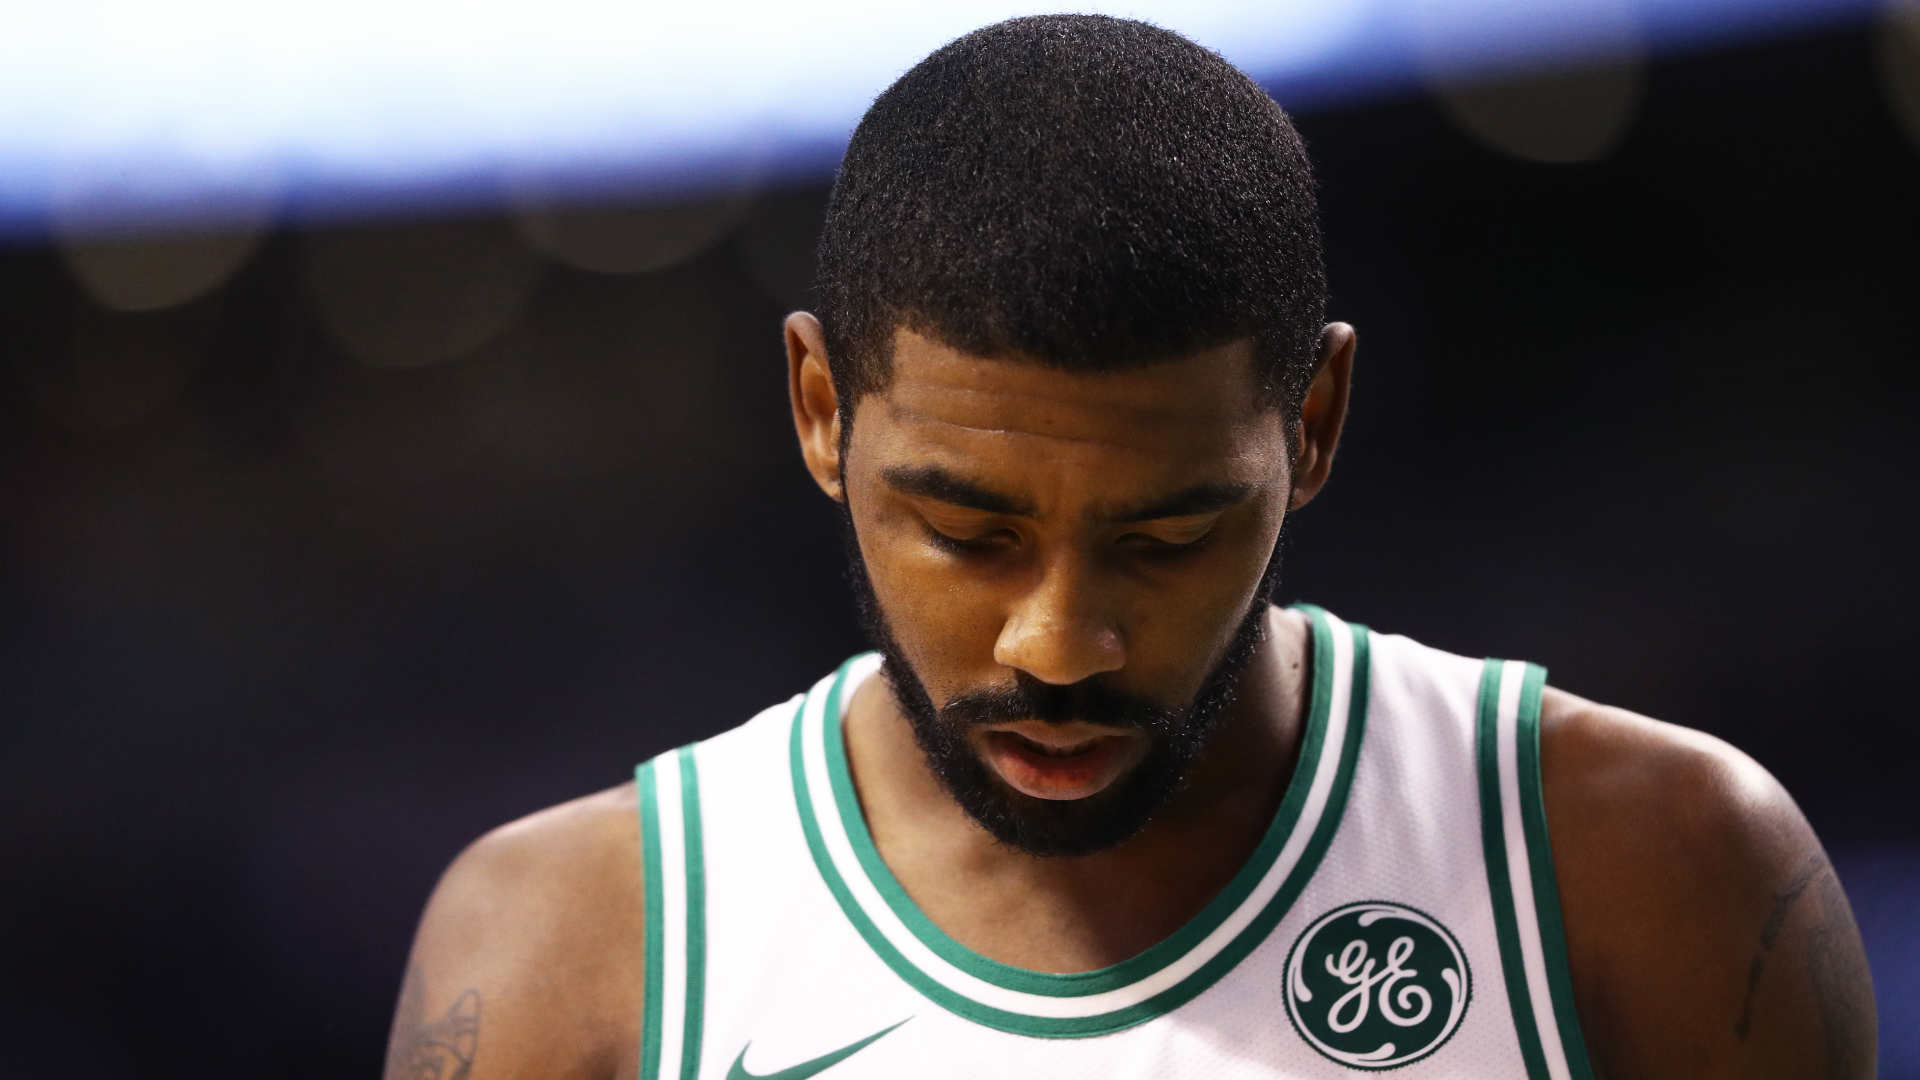 Kyrie Irving doubtful for Sunday's game with 'minor facial fracture'